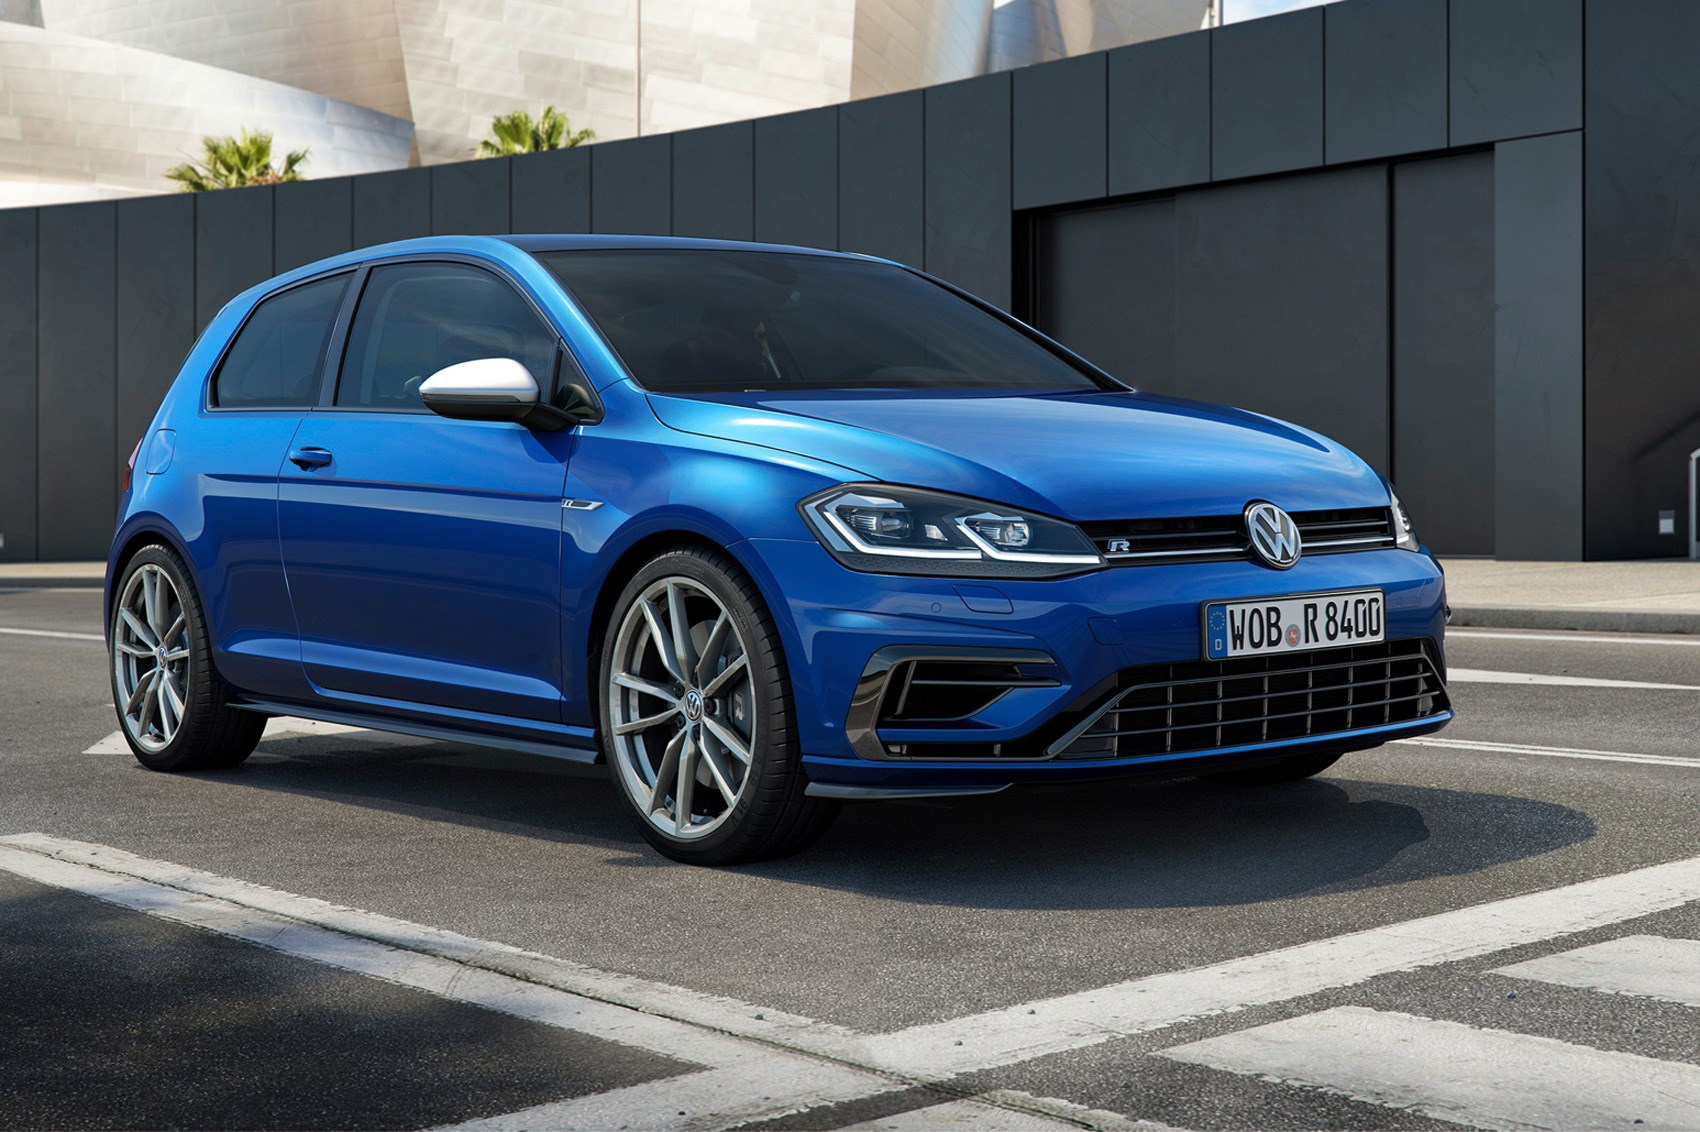 http://images.car.bauercdn.com/pagefiles/68828/vw_golf_r_2017_2.jpg